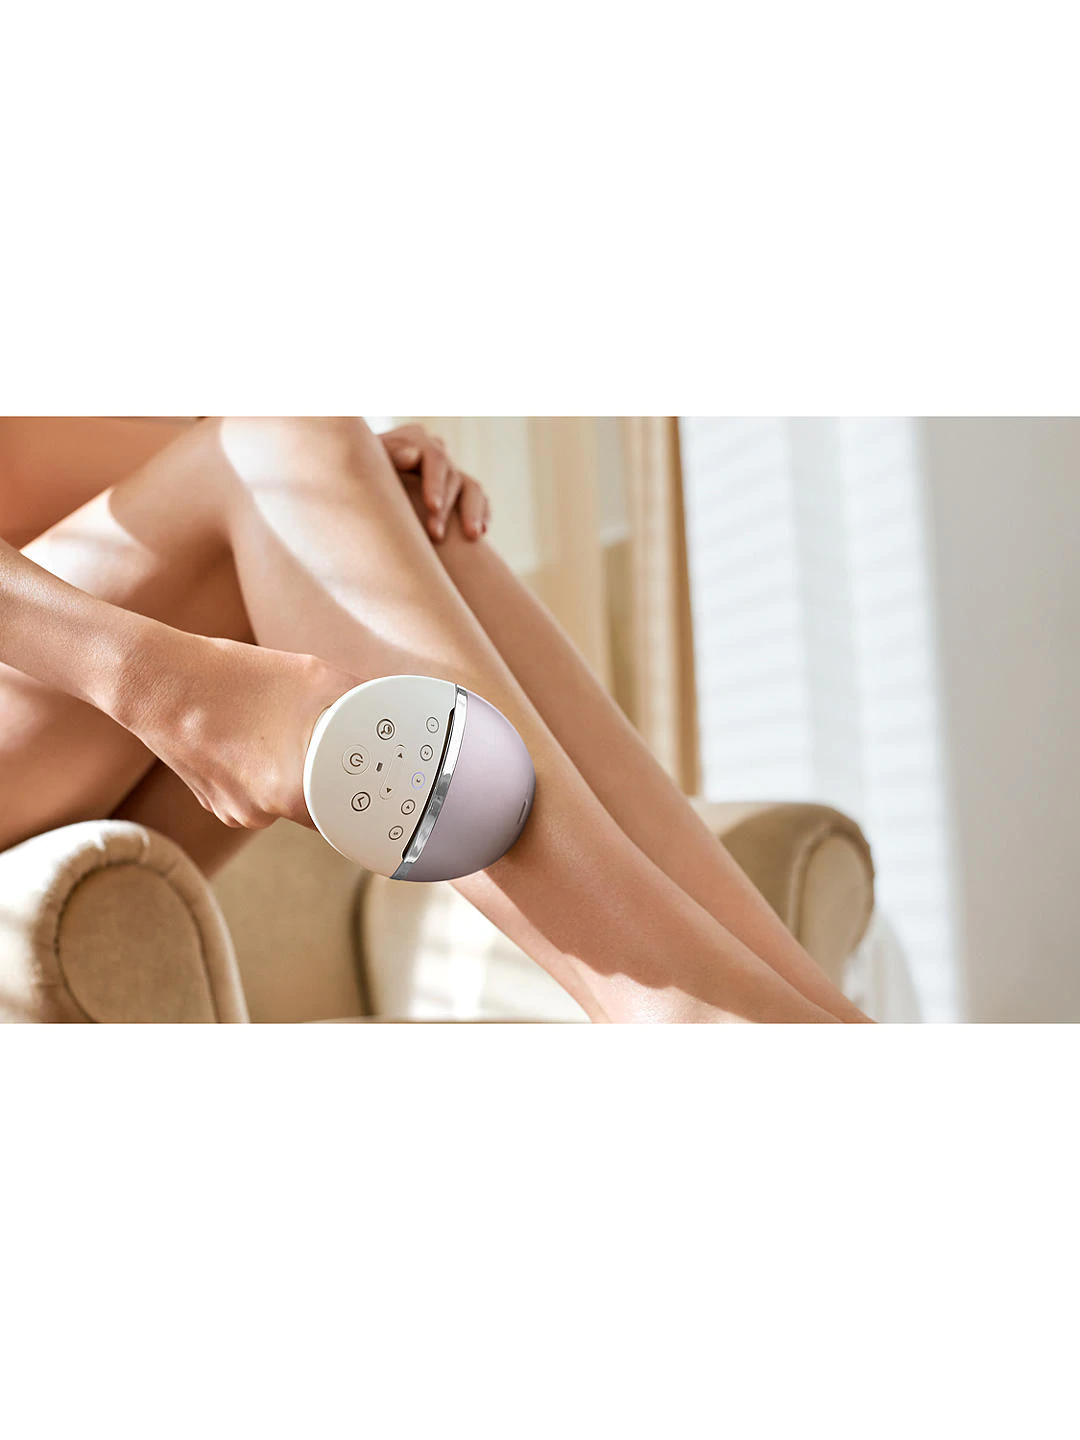 Lumea Prestige IPL Hair Removal Device for Body, Face & Precision Areas